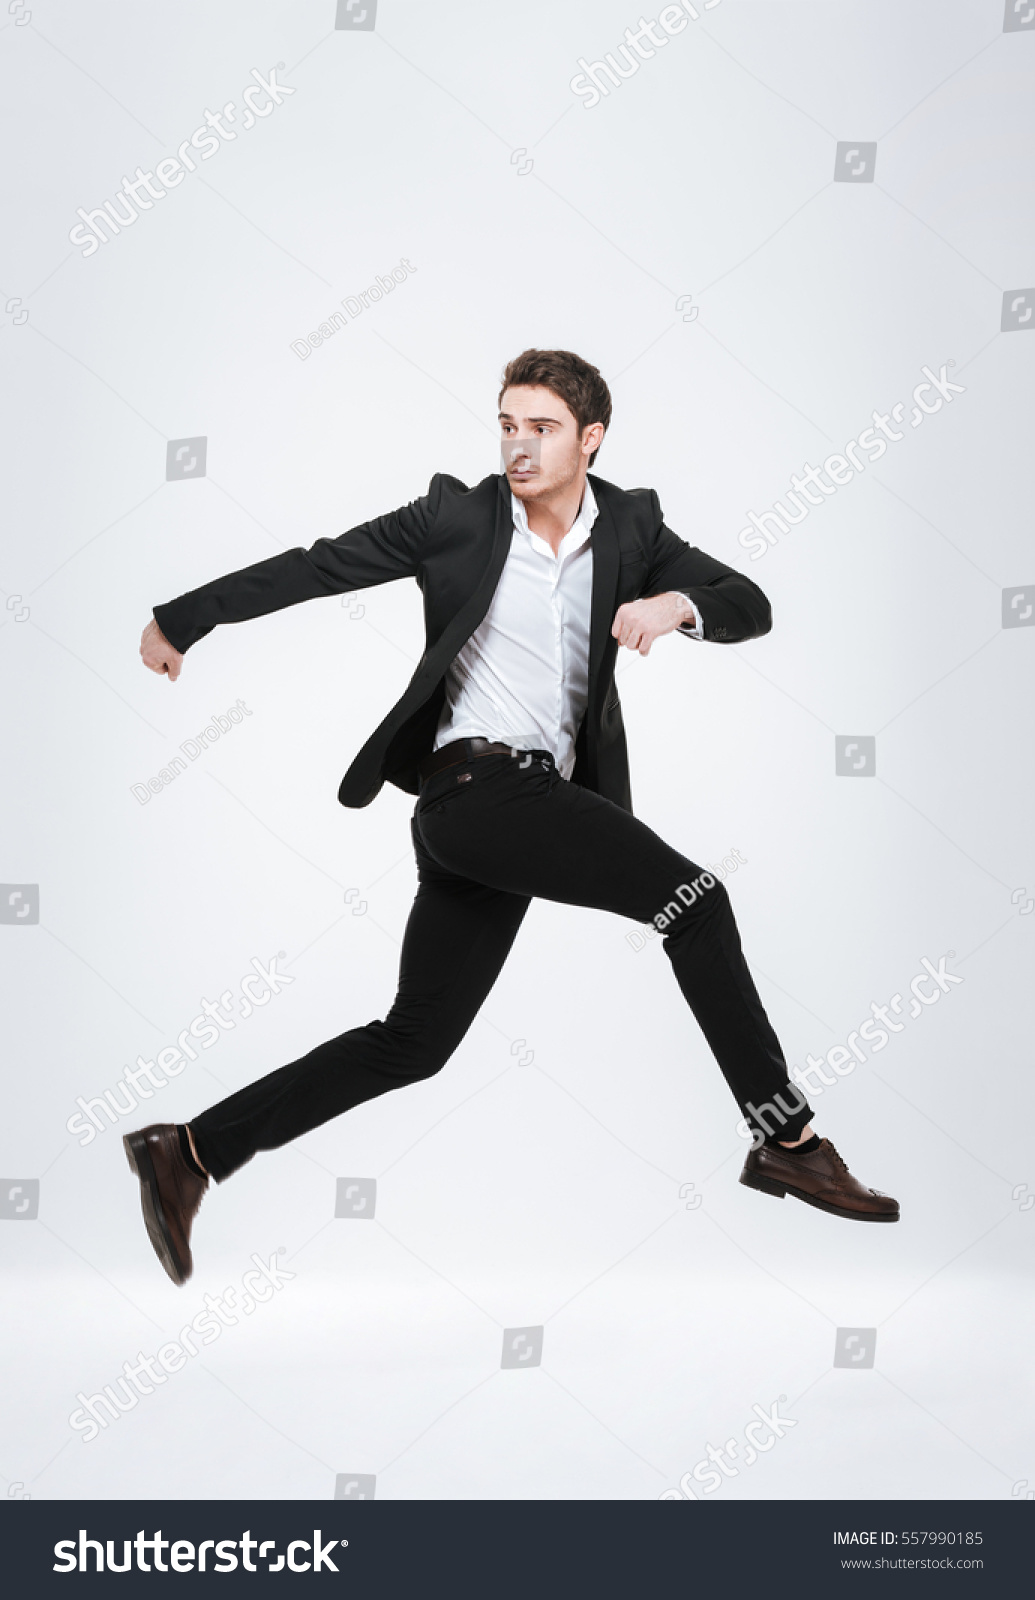 47f52ec13d Full length business man in black suit jumping in studio isolated on a white  background.